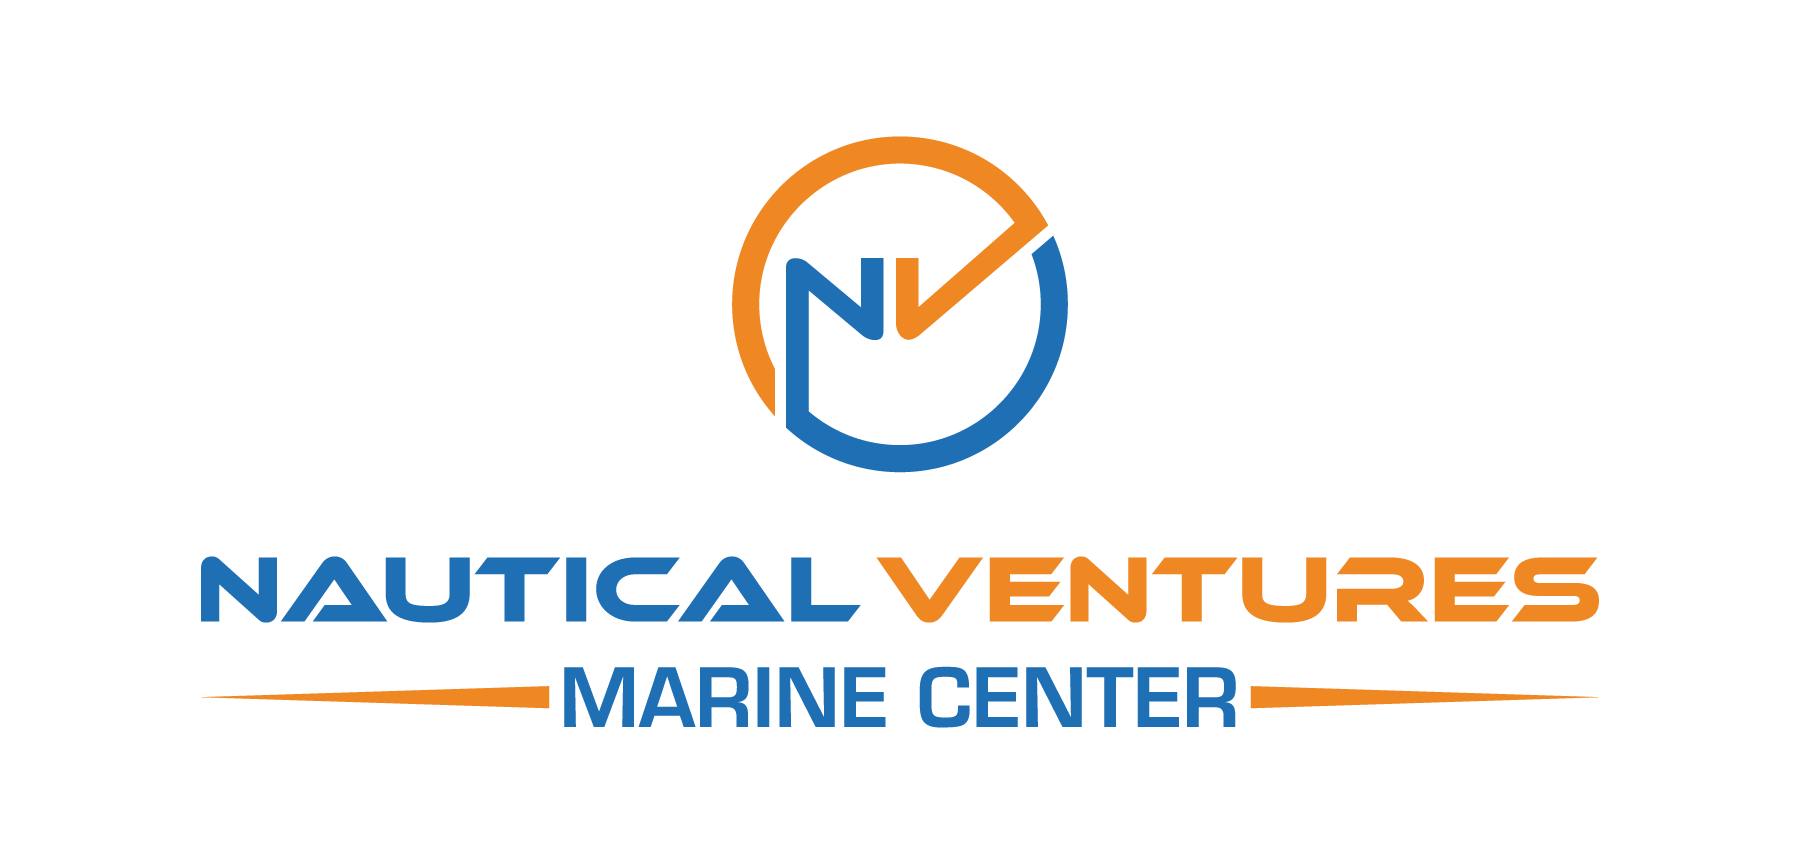 Nautical Ventures - Nautical Ventures - Palm Beach logo